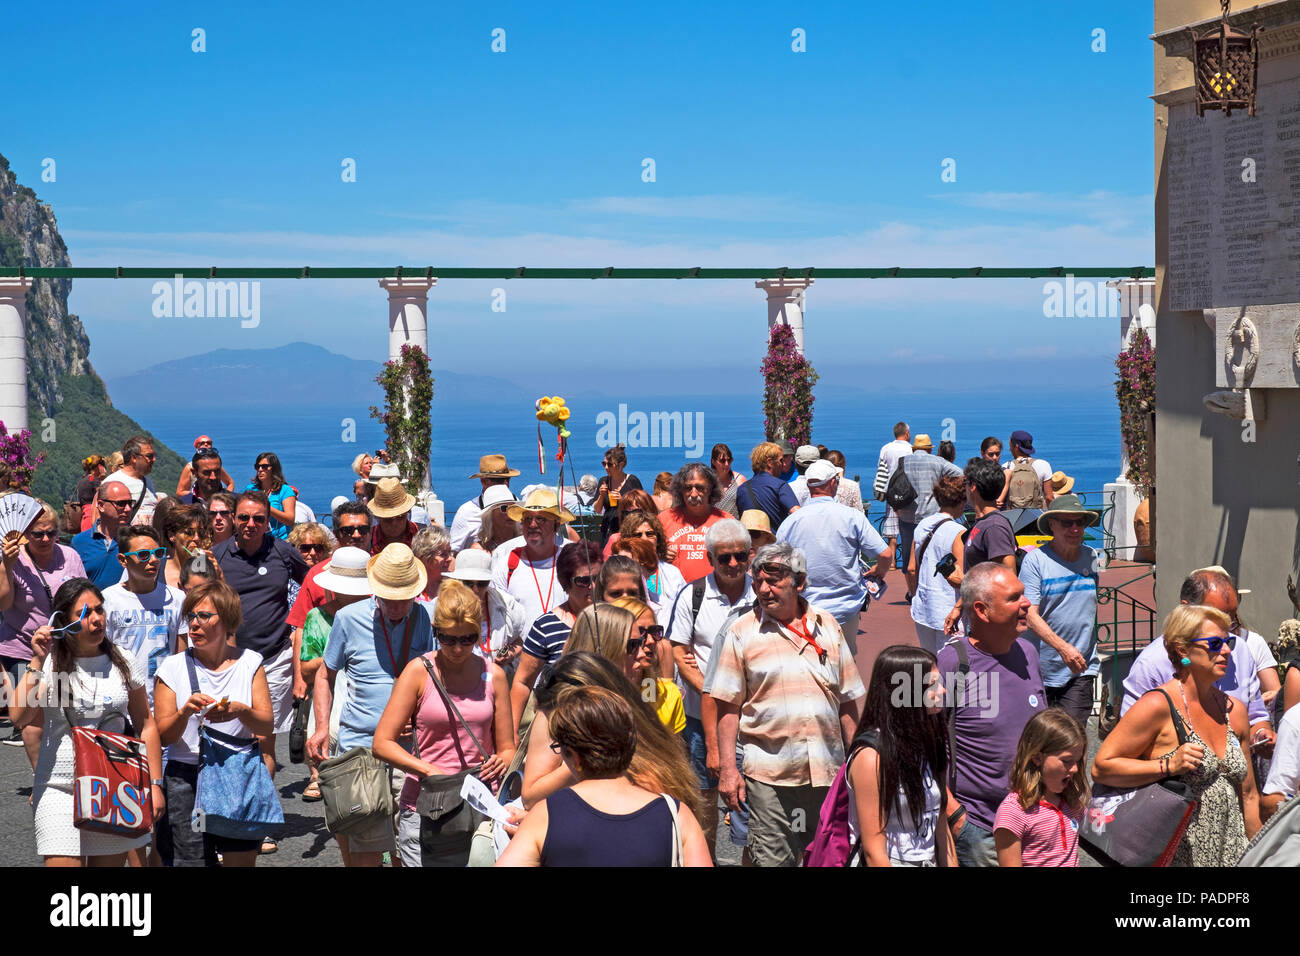 crowds of visitors tourists on the ilsand of capri, italy. - Stock Image